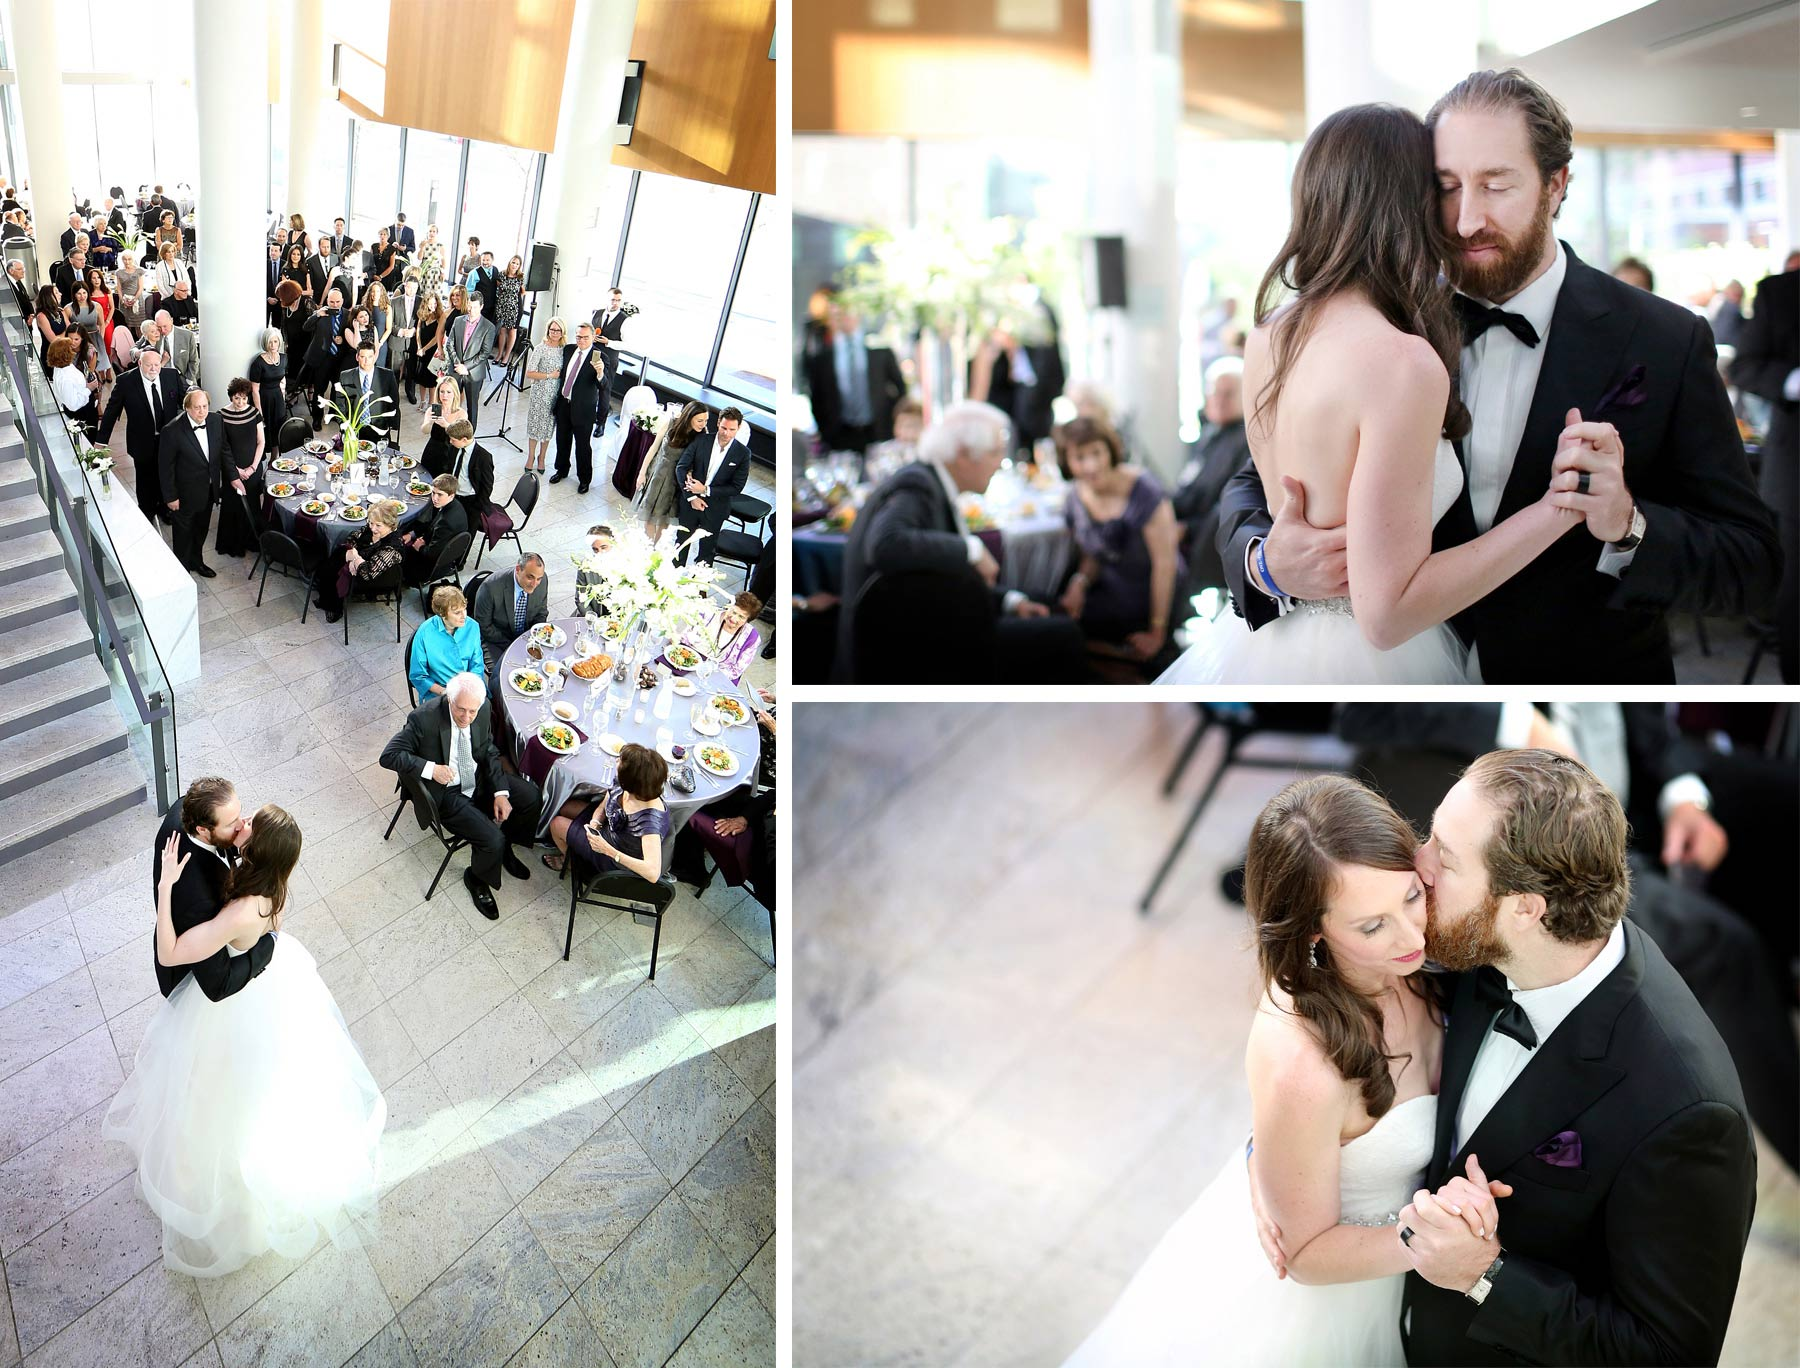 16-Minneapolis-Minnesota-Wedding-Photography-by-Vick-Photography-Orchestra-Hall-Downtown-Reception-Lisa-and-Jared.jpg